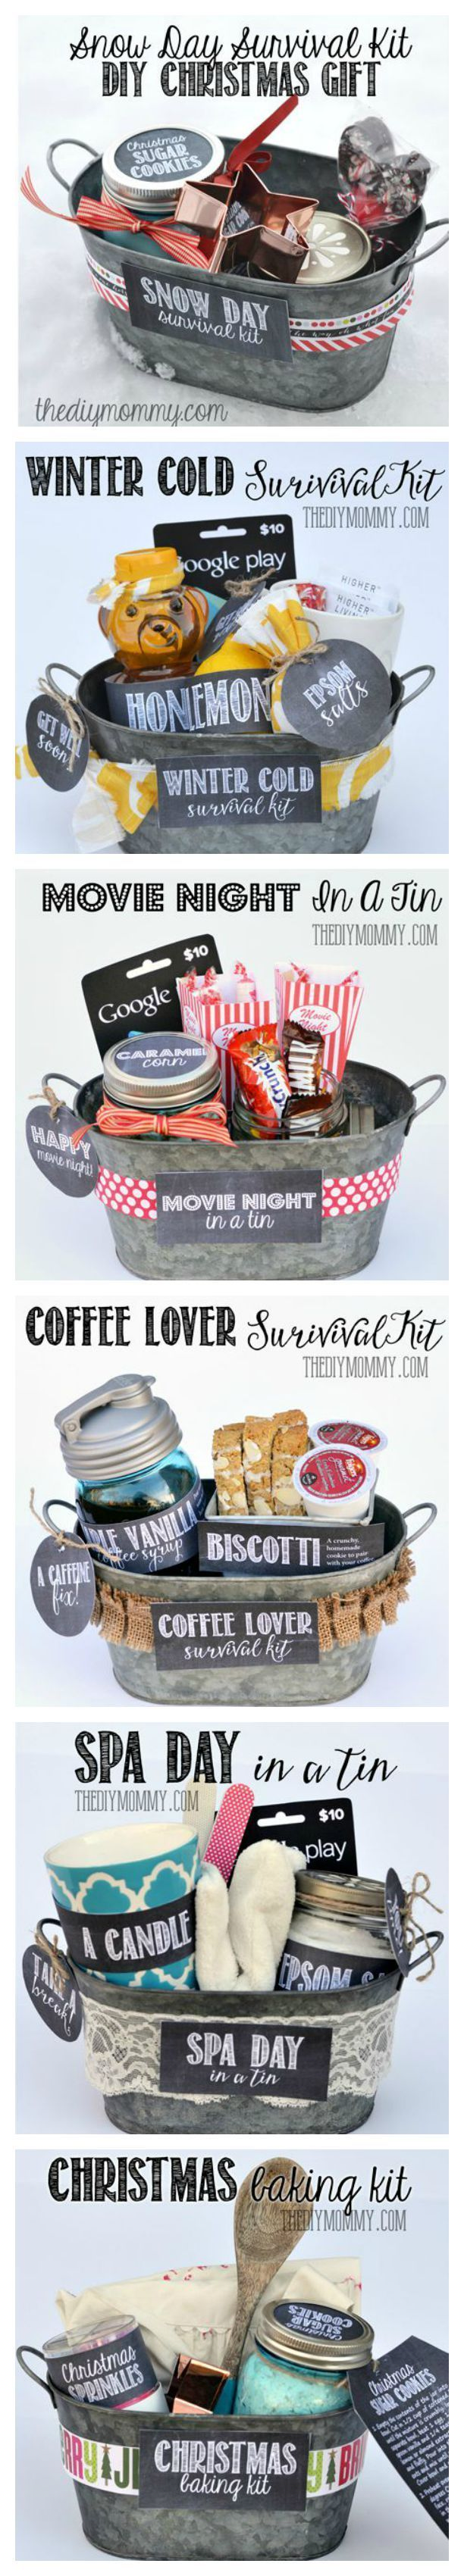 #family #christmas Gifts In A Tin ~ Some wonderful ideas! All 6 gift basket ideas come with free tags and labels, and a list of suggested items... Snow Day Survival Kit, Winter Cold Survival Kit, Movie Night in a Tin, Coffee Lover Survival Kit, Spa Day in a Tin, Christmas Baking Kit::